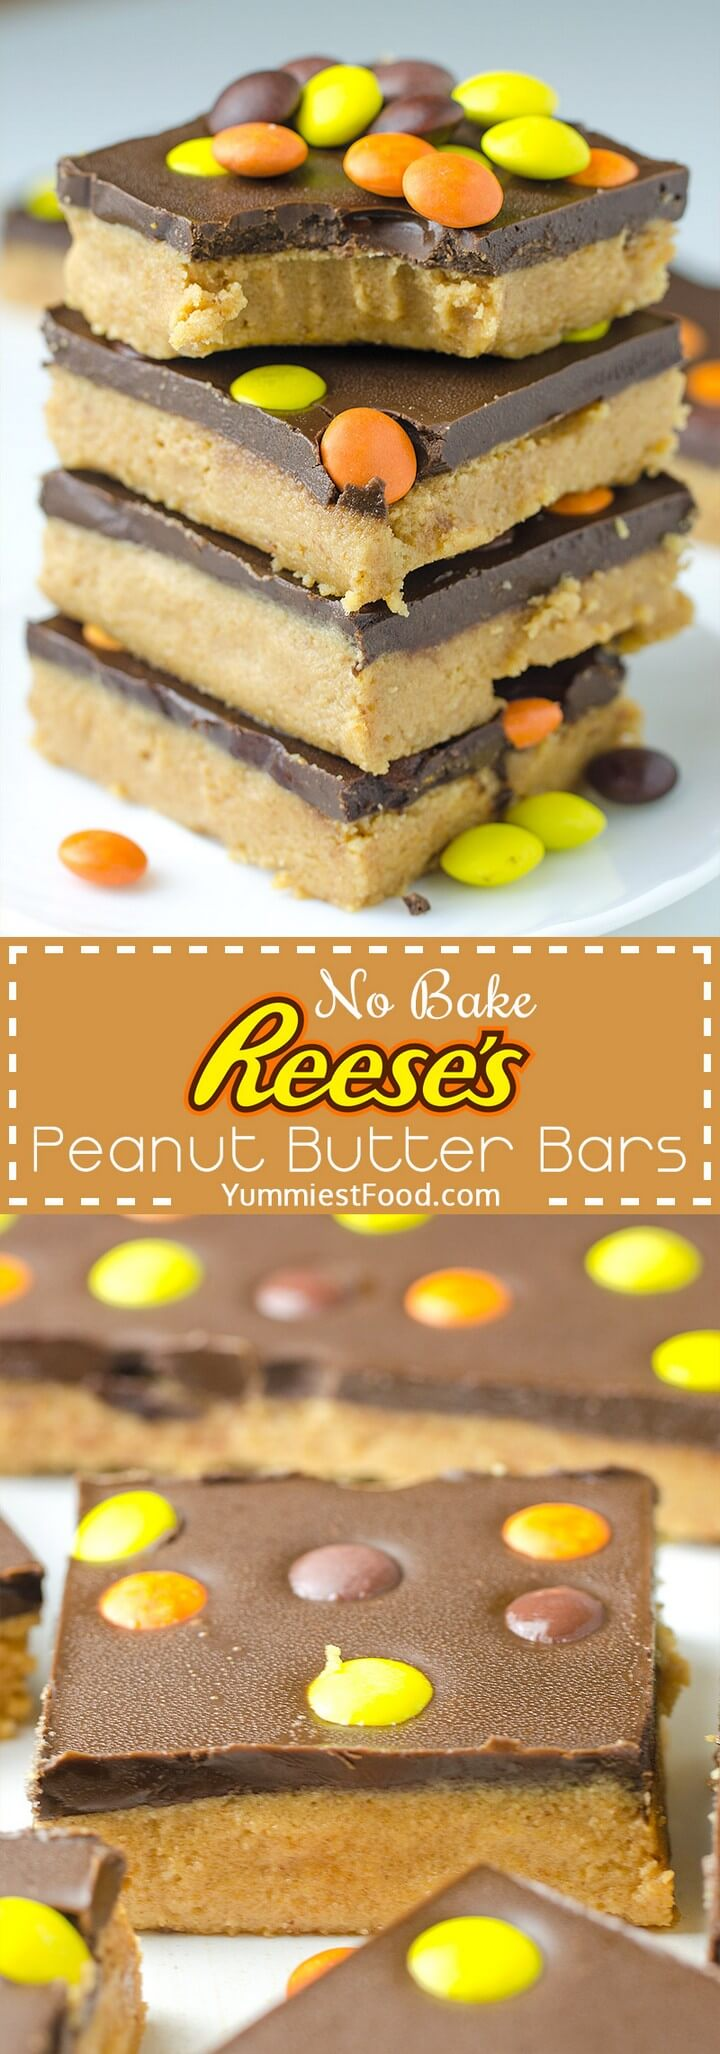 Easy No Bake Reese's Peanut Butter Bars Recipe, easy no bake dessert recipes with few ingredients, fancy no bake desserts, elegant no bake desserts, no bake desserts for kids, gourmet no bake desserts, no bake desserts allrecipes, no bake dessert bars, chocolate no bake desserts, easy dessert recipes with pictures, best dessert recipes, dessert recipes for kids, easy dessert recipes with condensed milk, easy dessert recipes no baking, chocolate dessert recipes, easy dessert recipes with few ingredients, desserts list, no bake dessert recipes, no bake dessert recipes easy, easy no bake dessert recipes with few ingredients,, no bake strawberry dessert recipes easy no bake desserts allrecipes, cheap no bake dessert recipes, no bake dessert recipes for summer, no bake blueberry dessert recipes, no bake lemon dessert recipes, best no bake dessert recipes, no bake dessert recipes with cream cheese, no bake cheesecake dessert recipes, easy no bake diabetic dessert recipes, no bake mason jar dessert recipes, no bake dessert recipes for business, gluten free no bake dessert recipes, no bake 4th of july dessert recipes, easy no bake dessert recipes for a crowd, no bake dessert recipes for a crowd, no bake strawberry dessert recipes easy uk, 3 ingredient no bake dessert recipes, no bake apple dessert recipes, non baking dessert recipes easy, reese's no bake dessert bars recipe, low carb no bake dessert recipes, no bake dessert recipes with few ingredients, no bake dessert bars recipes, no bake dessert recipes food network, low calorie no bake dessert recipes, easy no bake dessert recipes with few ingredients filipino, easy no bake lemon dessert recipes, no bake holiday dessert recipes, no bake coconut dessert recipes, no bake desserts recipes south africa, no bake dessert recipes for thanksgiving, no bake italian dessert recipes, no bake dessert recipes for christmas, no bake berry dessert recipes, no bake dessert recipes with condensed milk, no bake easter dessert recipes, no